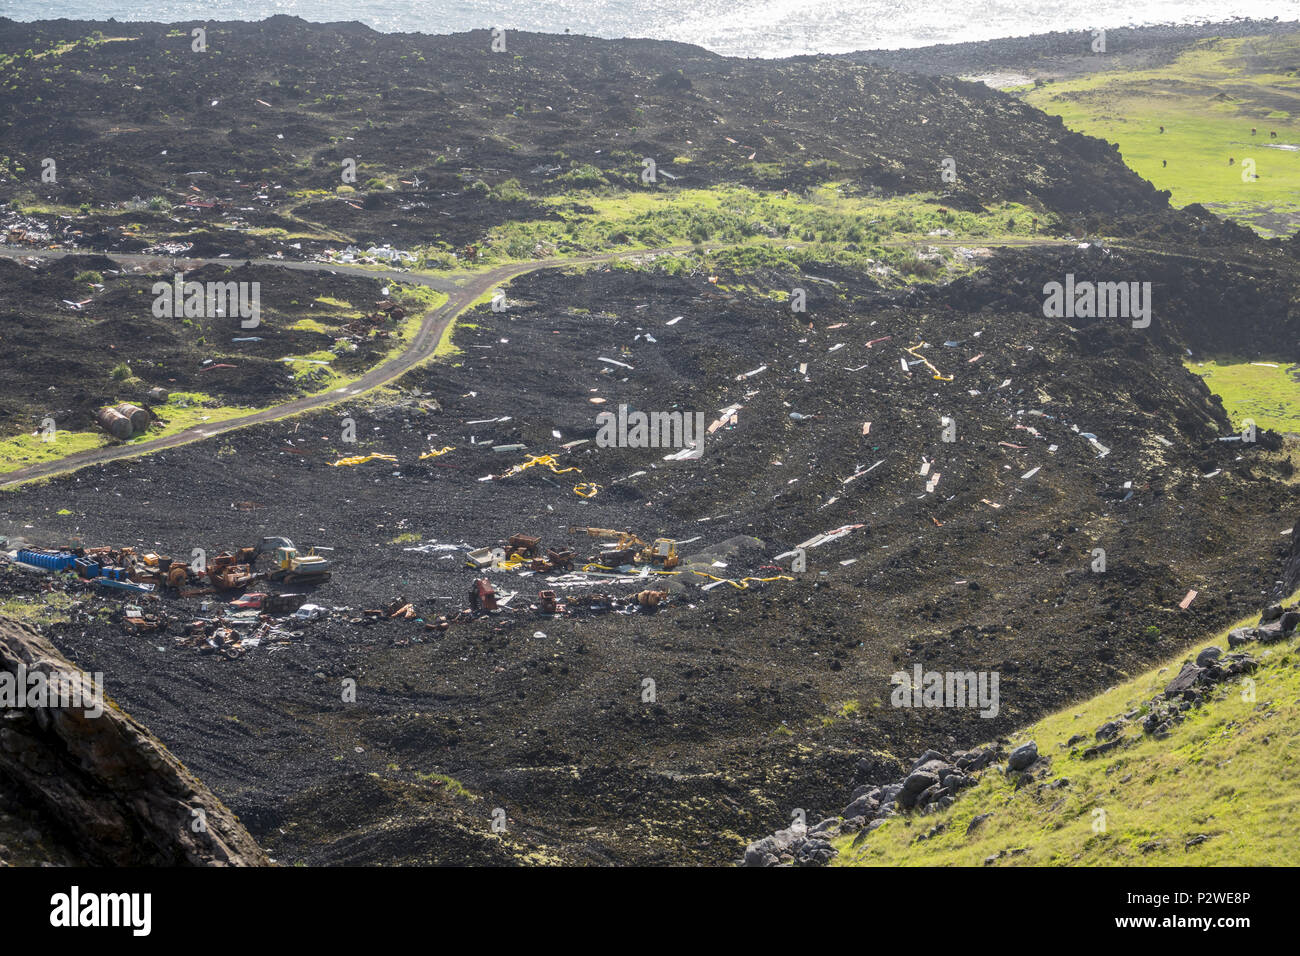 View over the remains of the old fish factory destroyed in the 1961 eruption at Tristan da Cunha, British Overseas Territories, South Atlantic Ocean - Stock Image